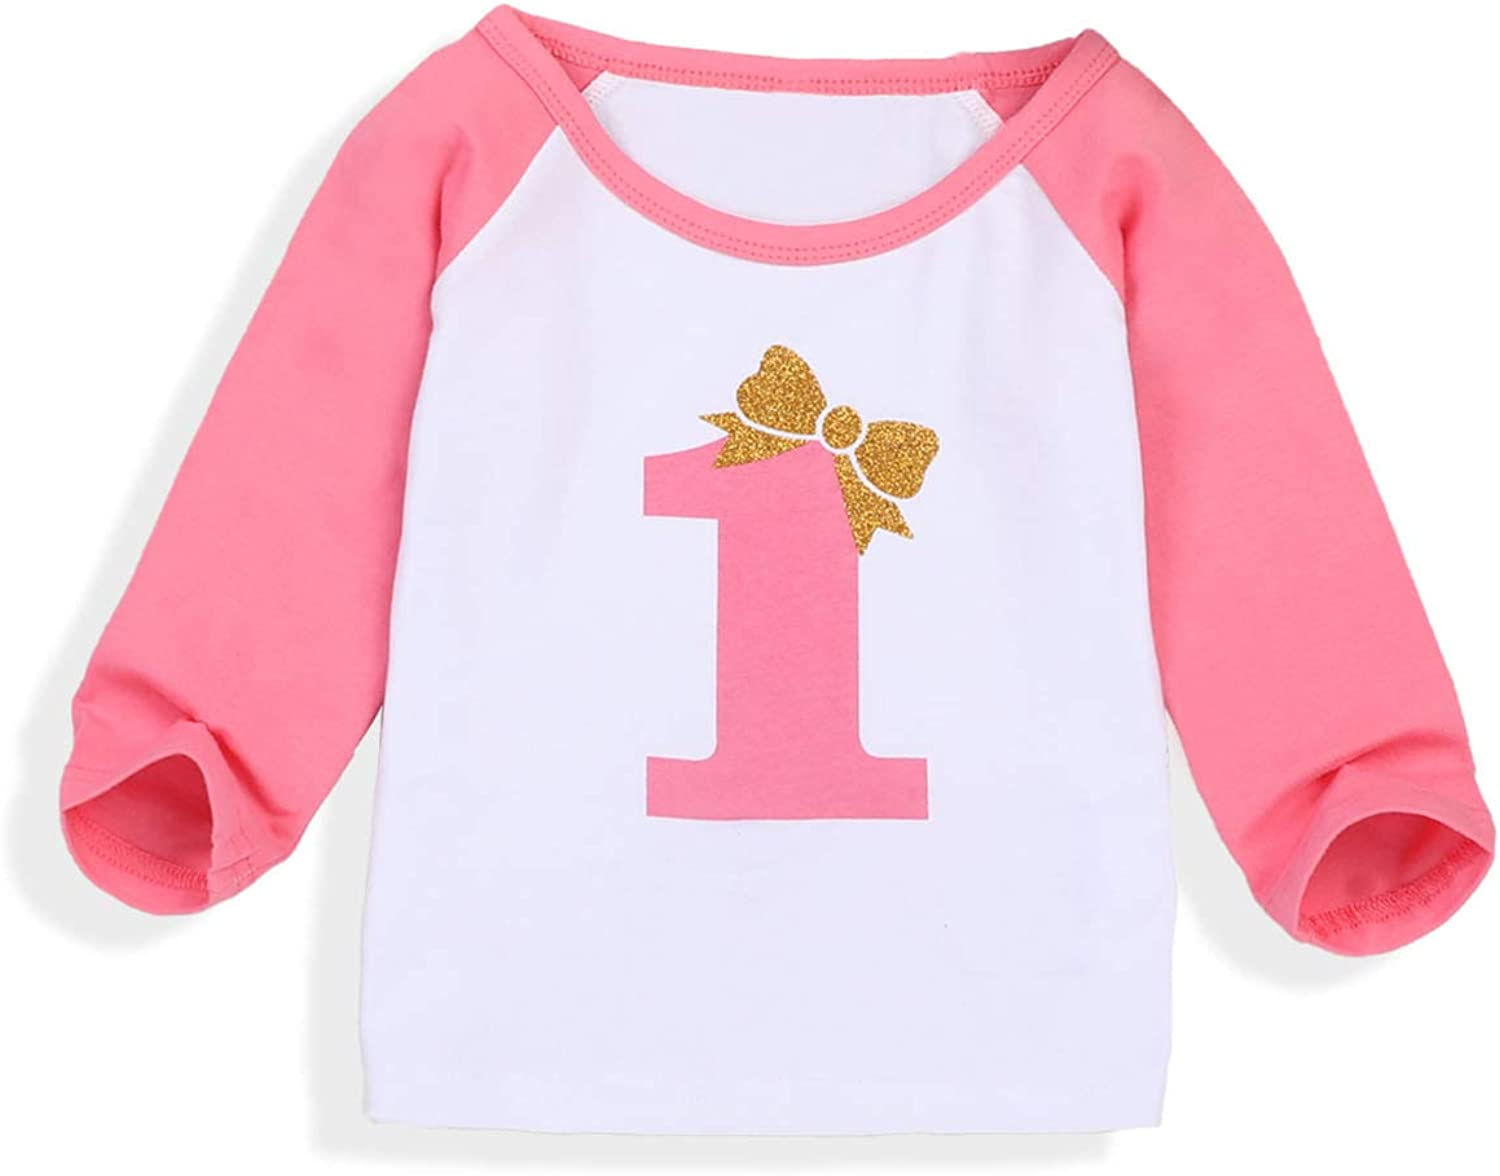 Baby Girls Boys 1st Birthday T Shirt One Letter Print Long Sleeve Tees for Kids First Birthday Gift